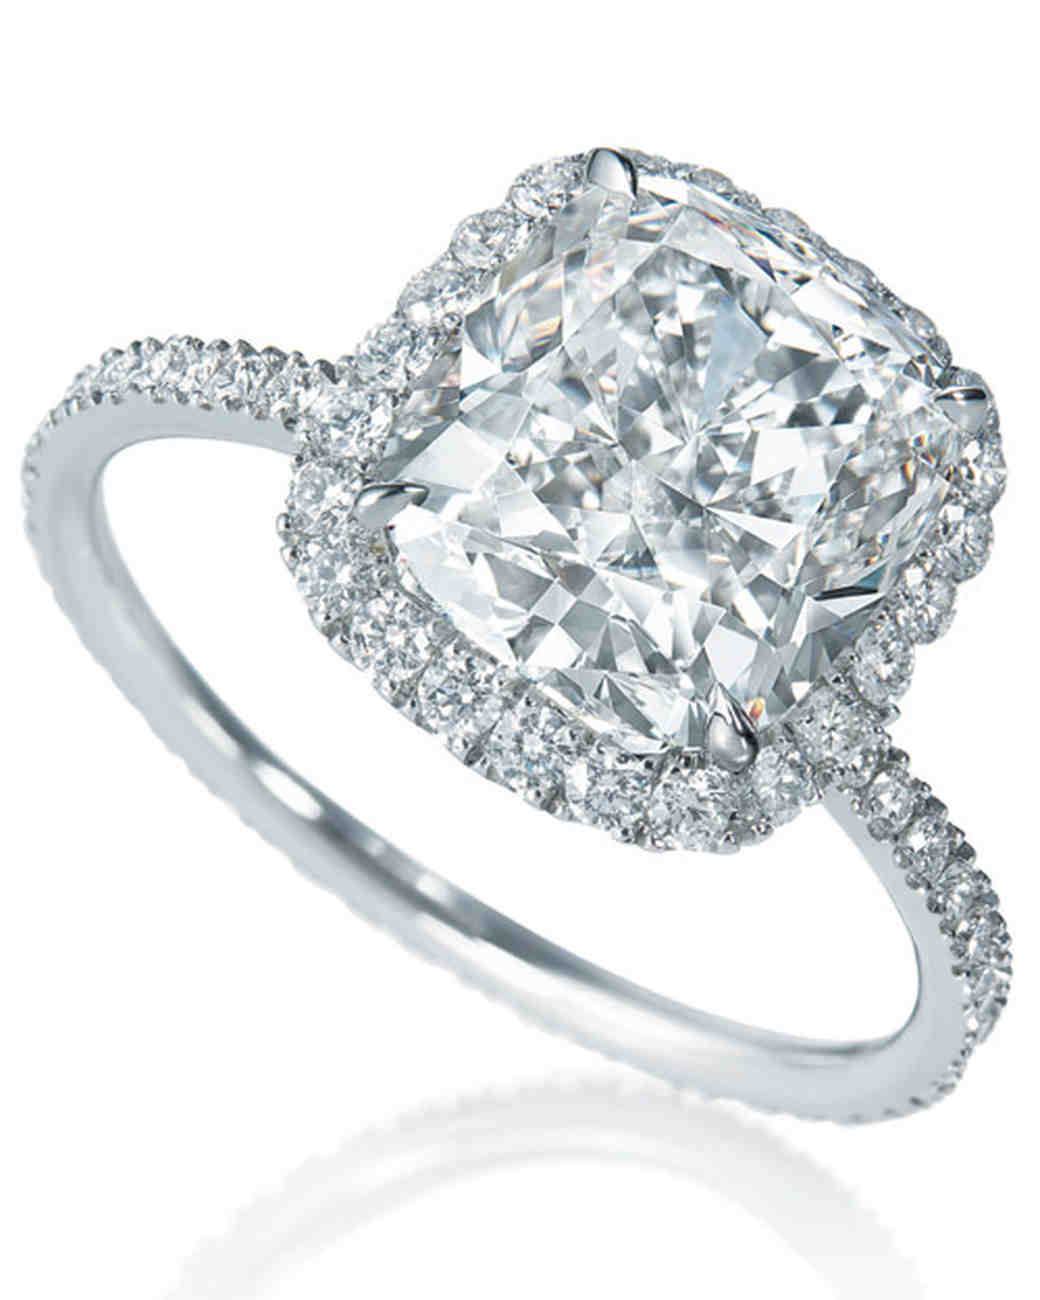 Tiffany Cushion Cut Engagement Rings